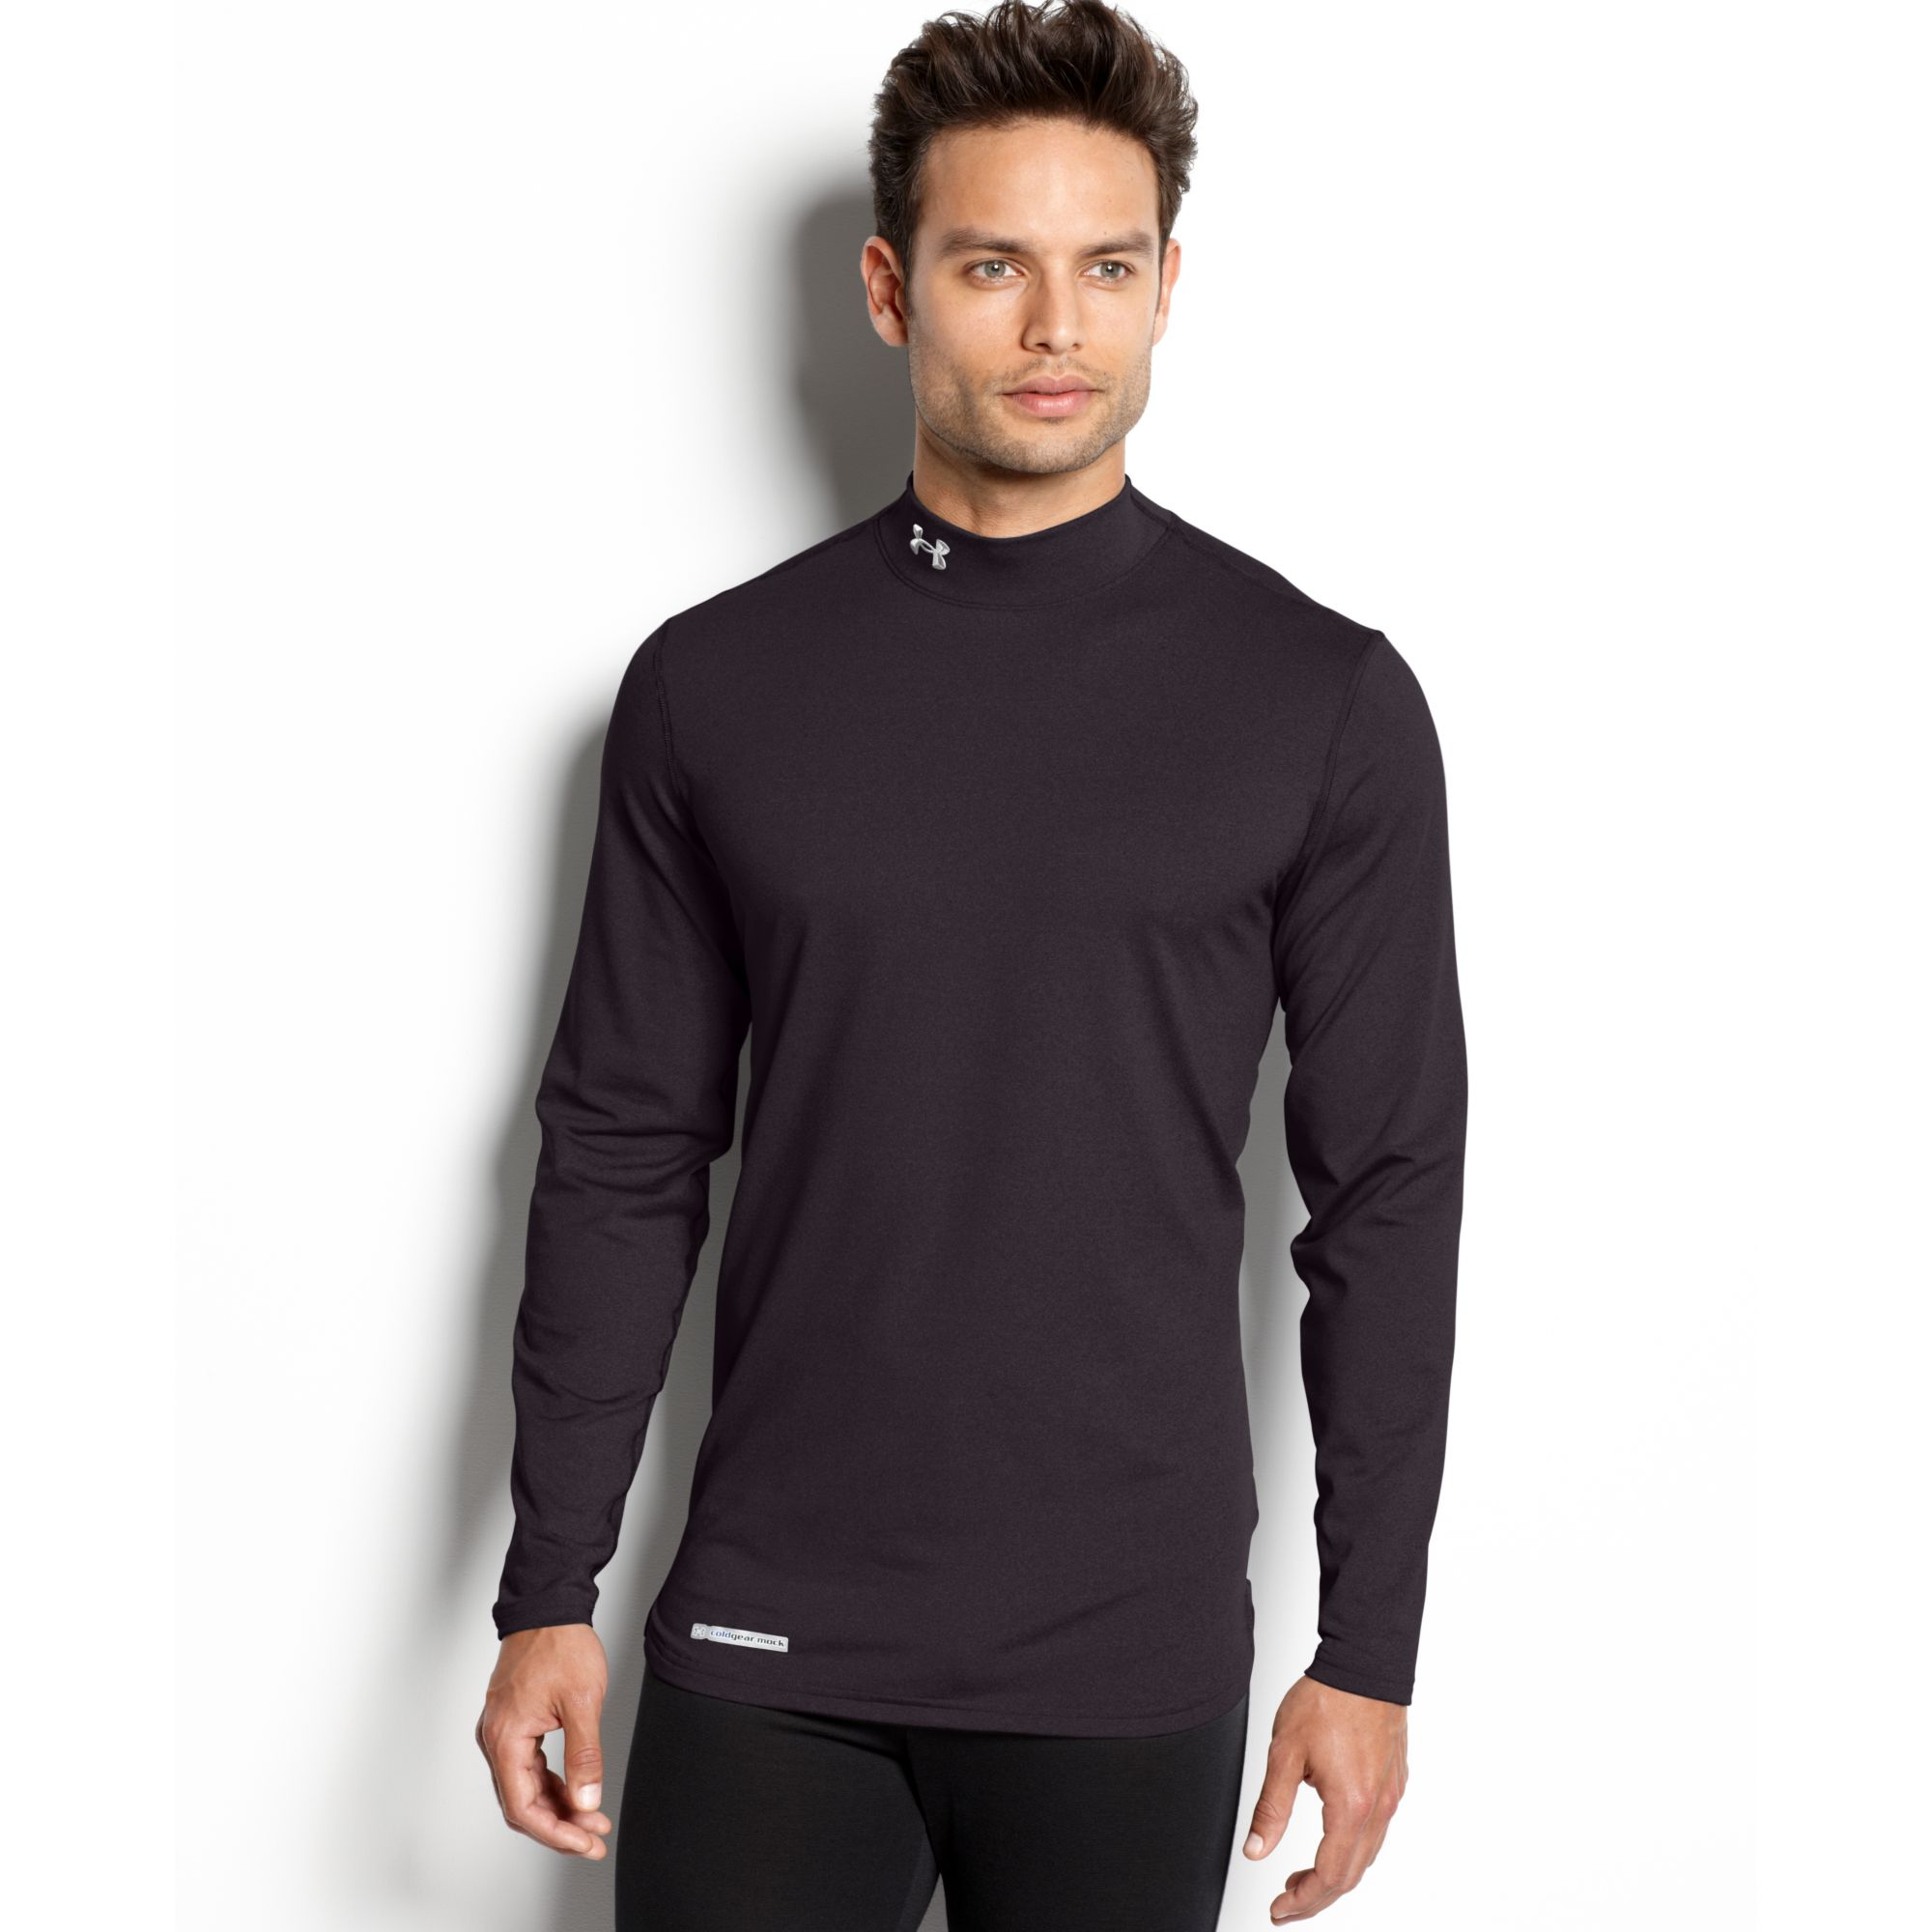 Under armour evo coldgear fitted long sleeve mock t shirt for Mock long sleeve t shirts